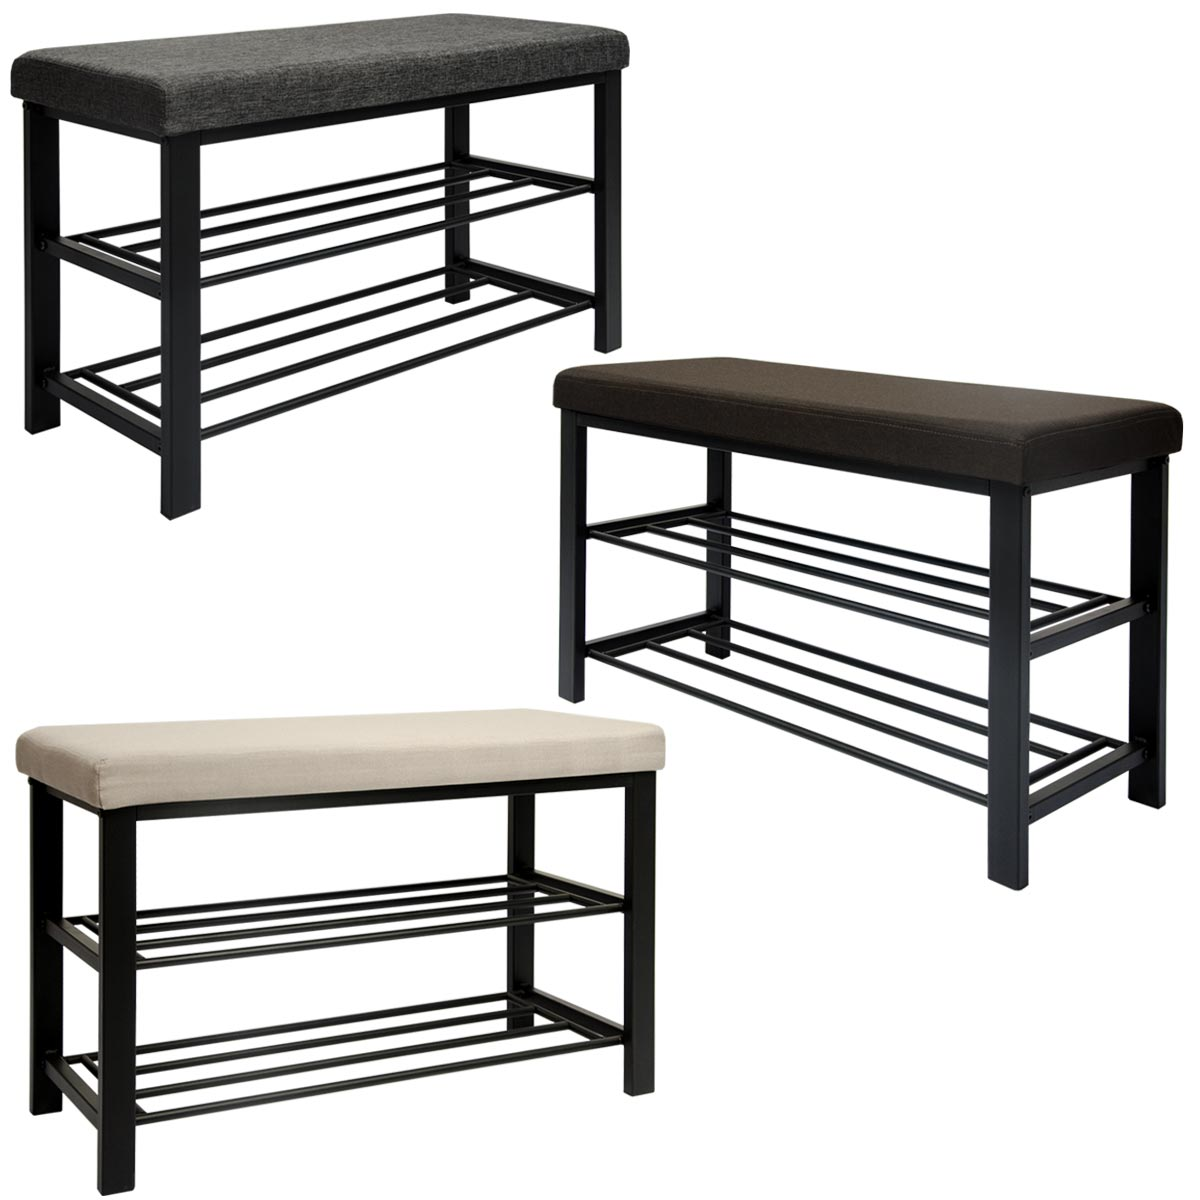 schuhregal mit sitzbank aus metall 81x32x46 cm schuhbank. Black Bedroom Furniture Sets. Home Design Ideas